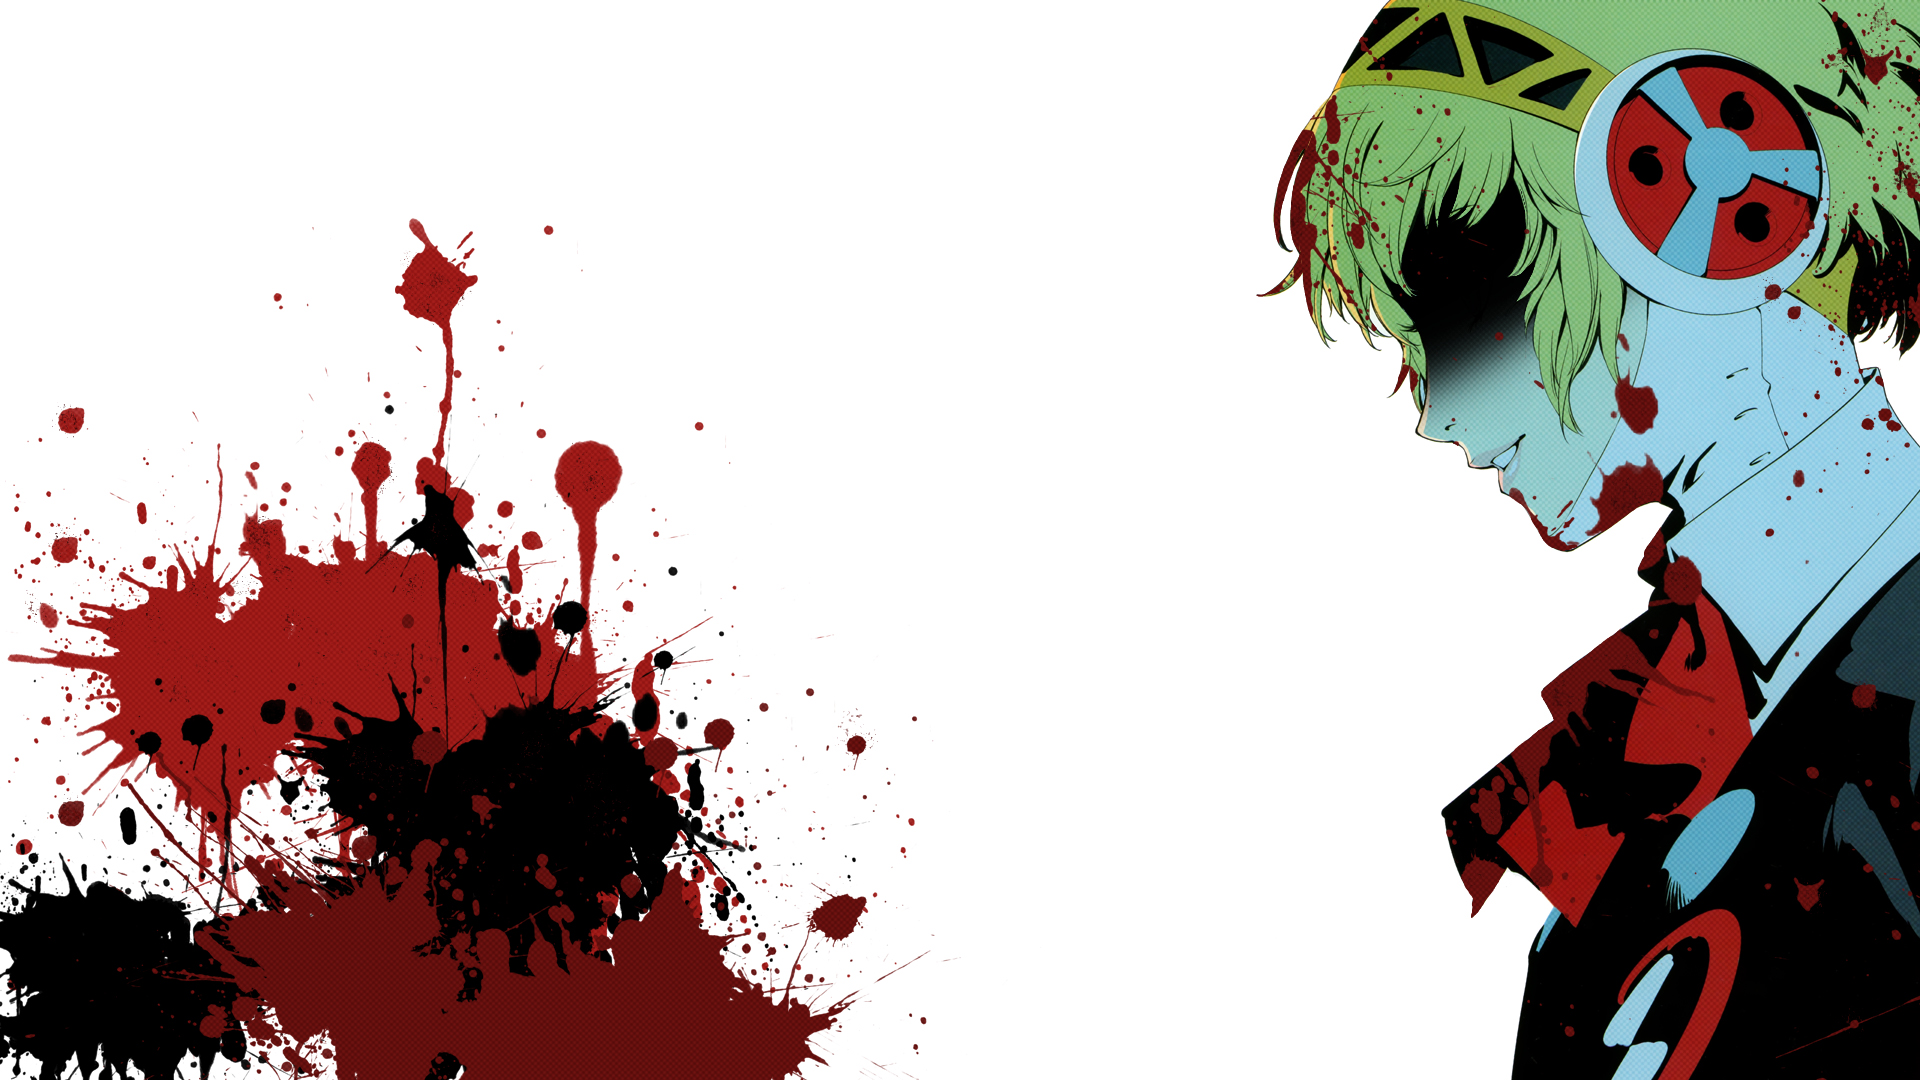 Video Game - Persona 3  Aigis (Persona) Wallpaper